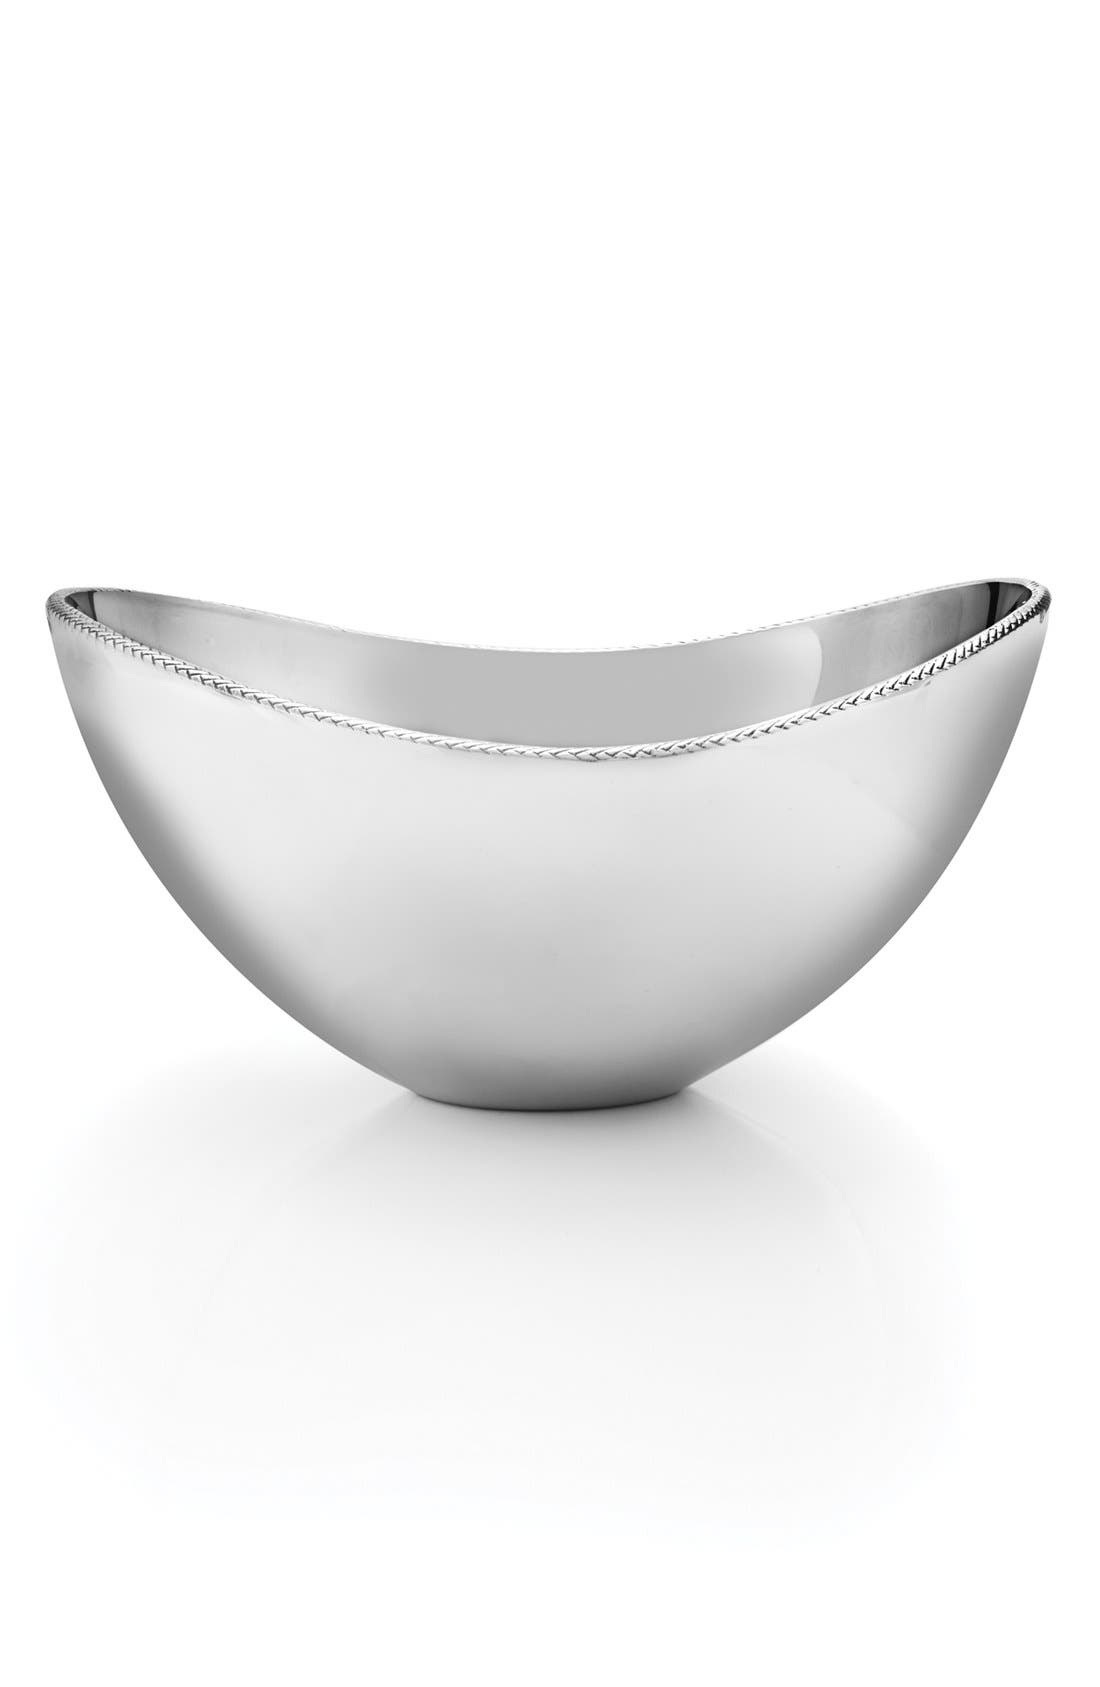 'Braid' Serving Bowl,                             Alternate thumbnail 5, color,                             040